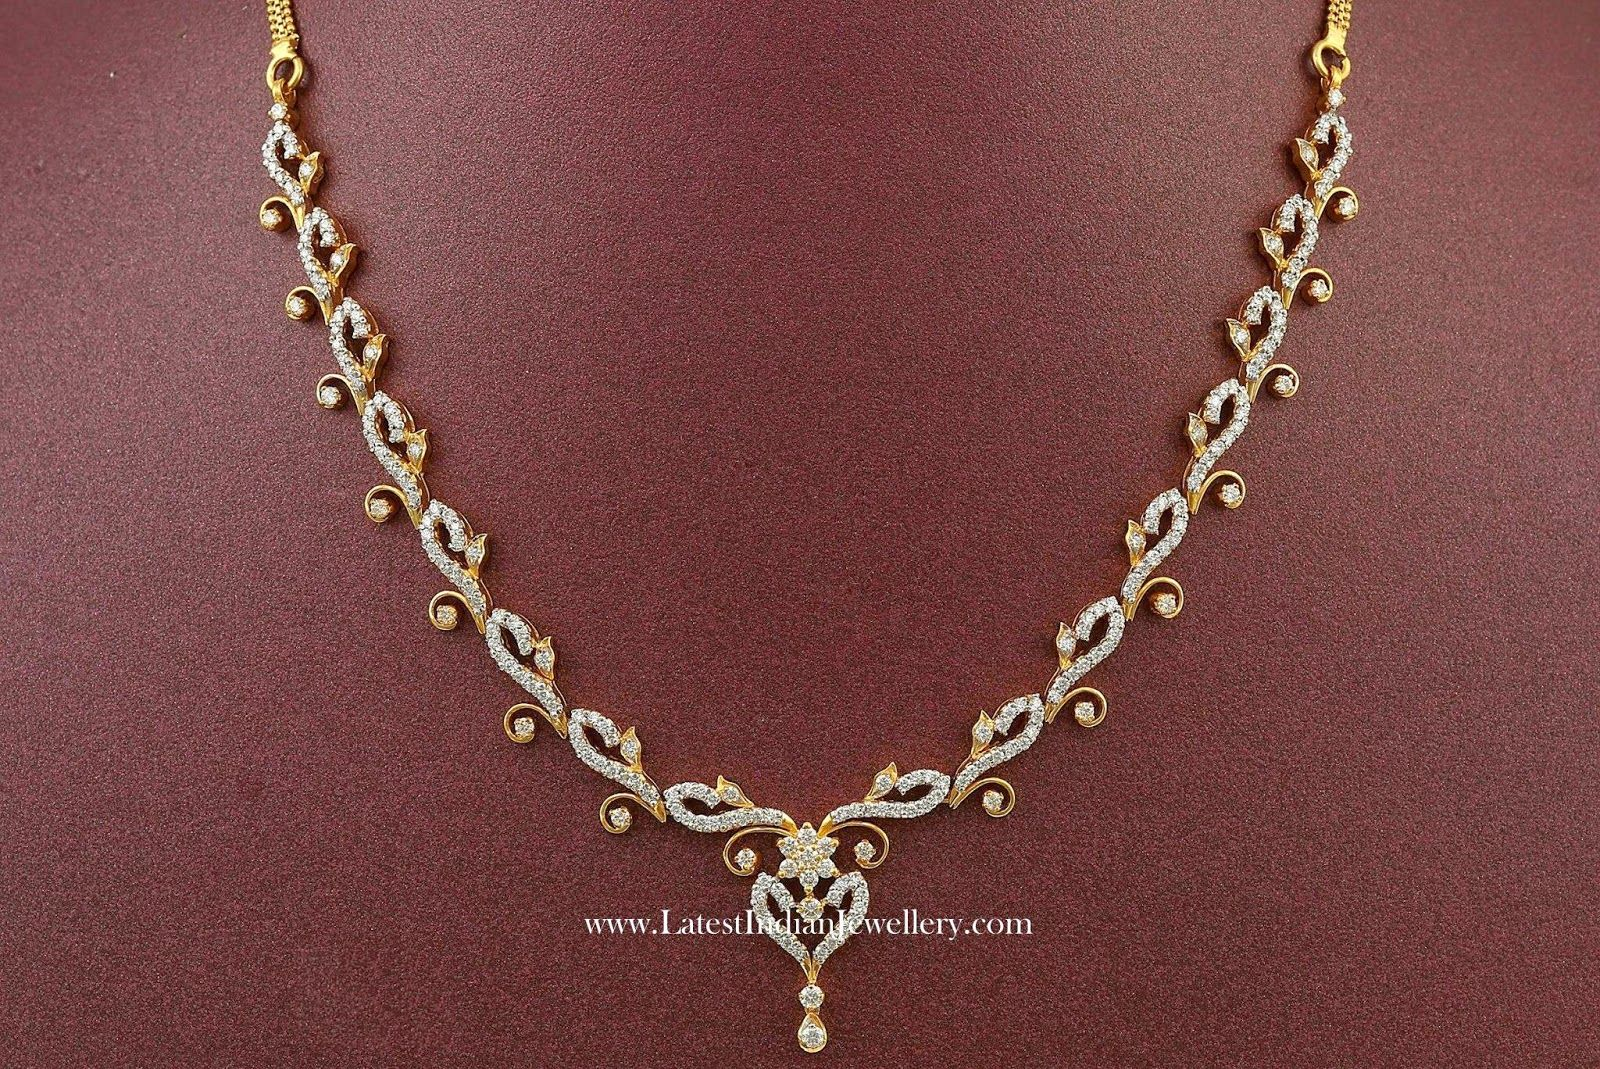 Affordable indian diamond necklace designs india jewelry paisley affordable indian diamond necklace designs latest indian jewellery designs aloadofball Image collections